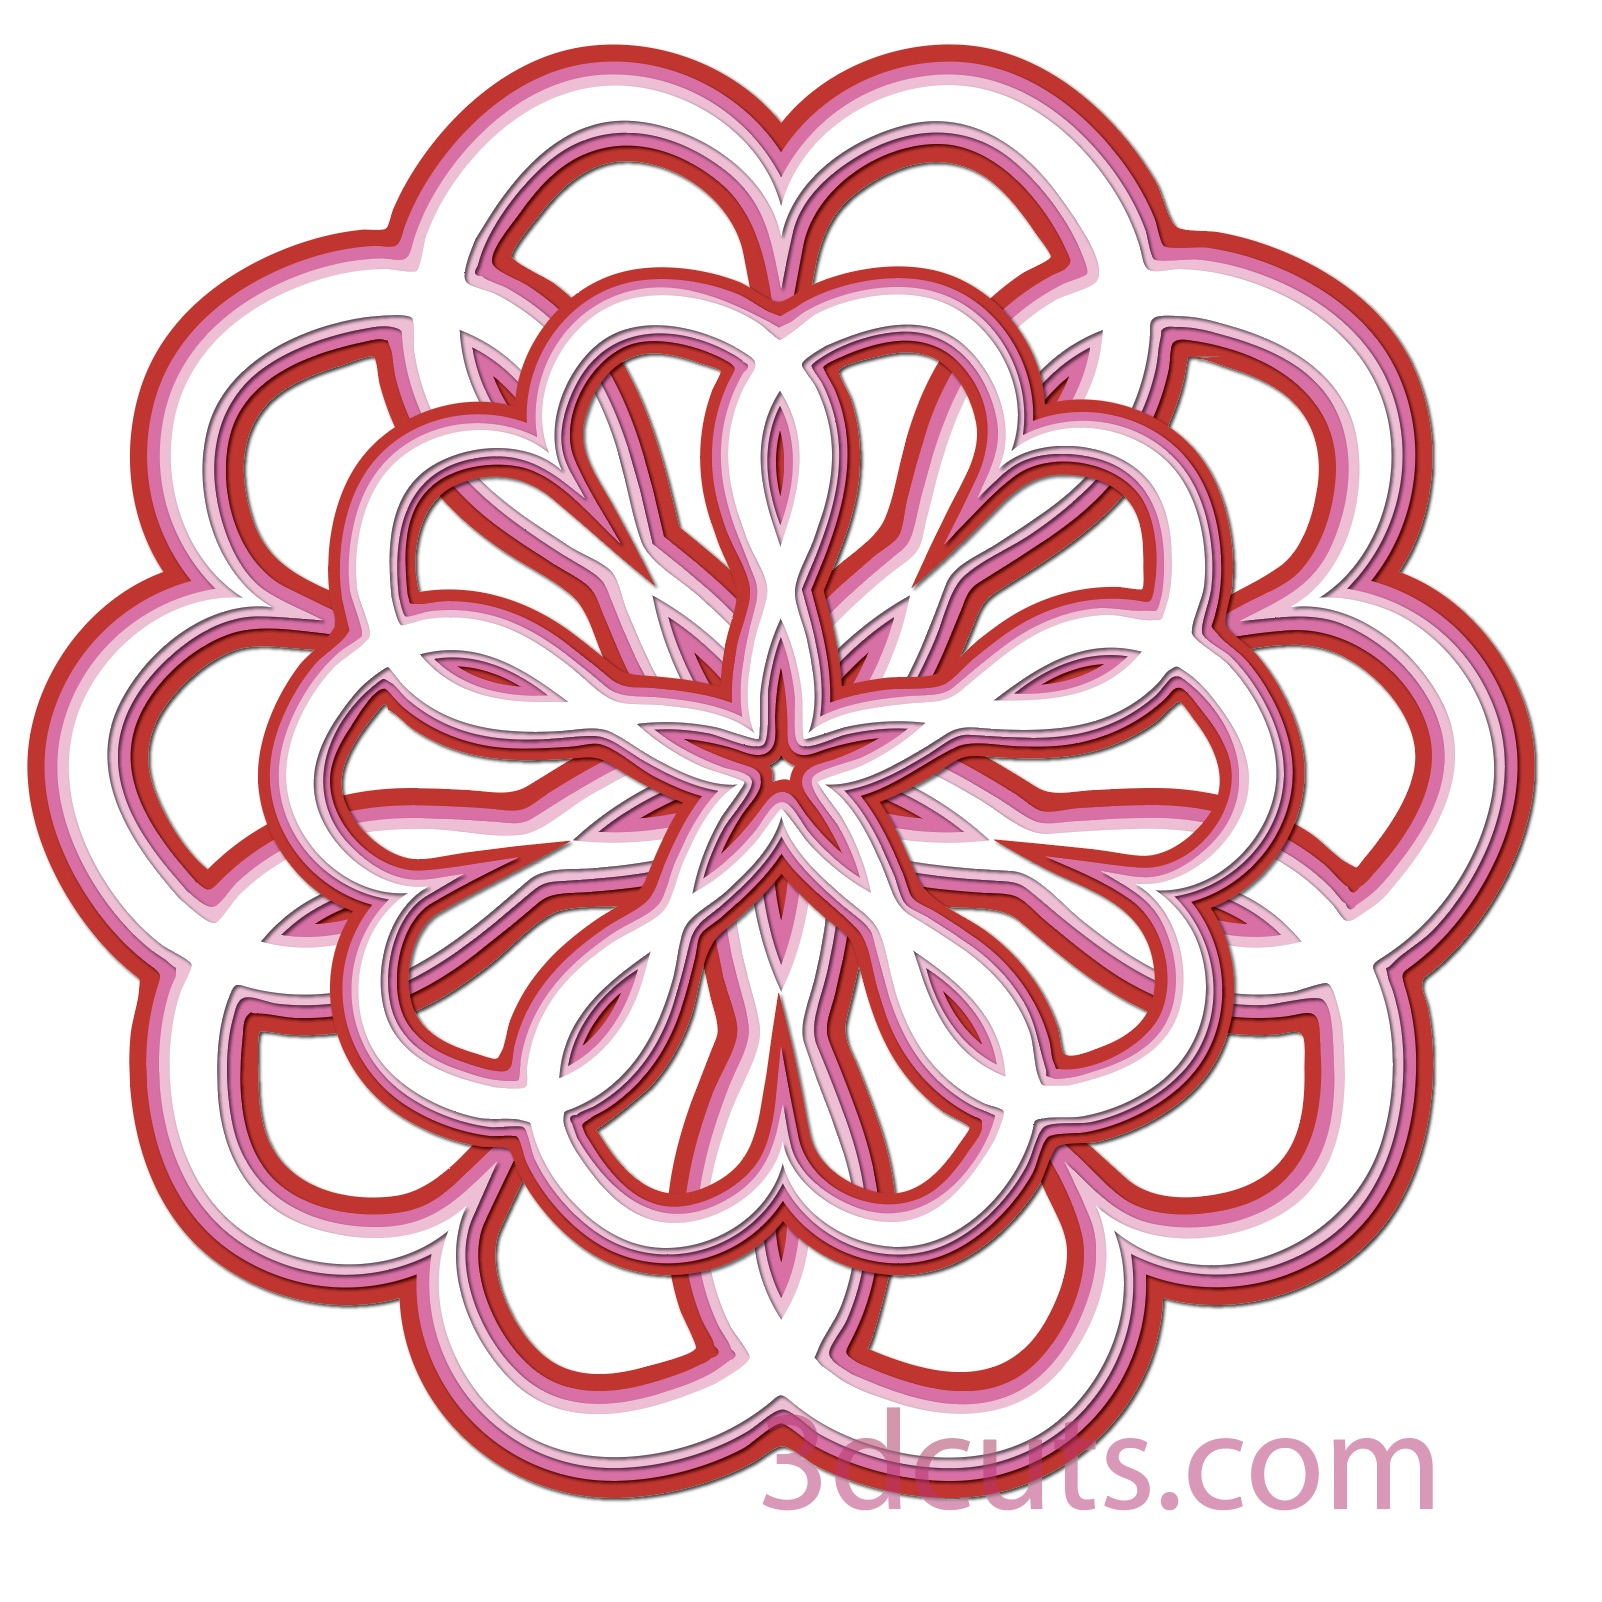 Layered Heart Mandala Designs for Valentine's Day 3dCuts.com,  by Marji Roy, 3D cutting files in .svg, .dxf, png and .pdf formats for use with Silhouette and Cricut cutting machines, paper crafting files,